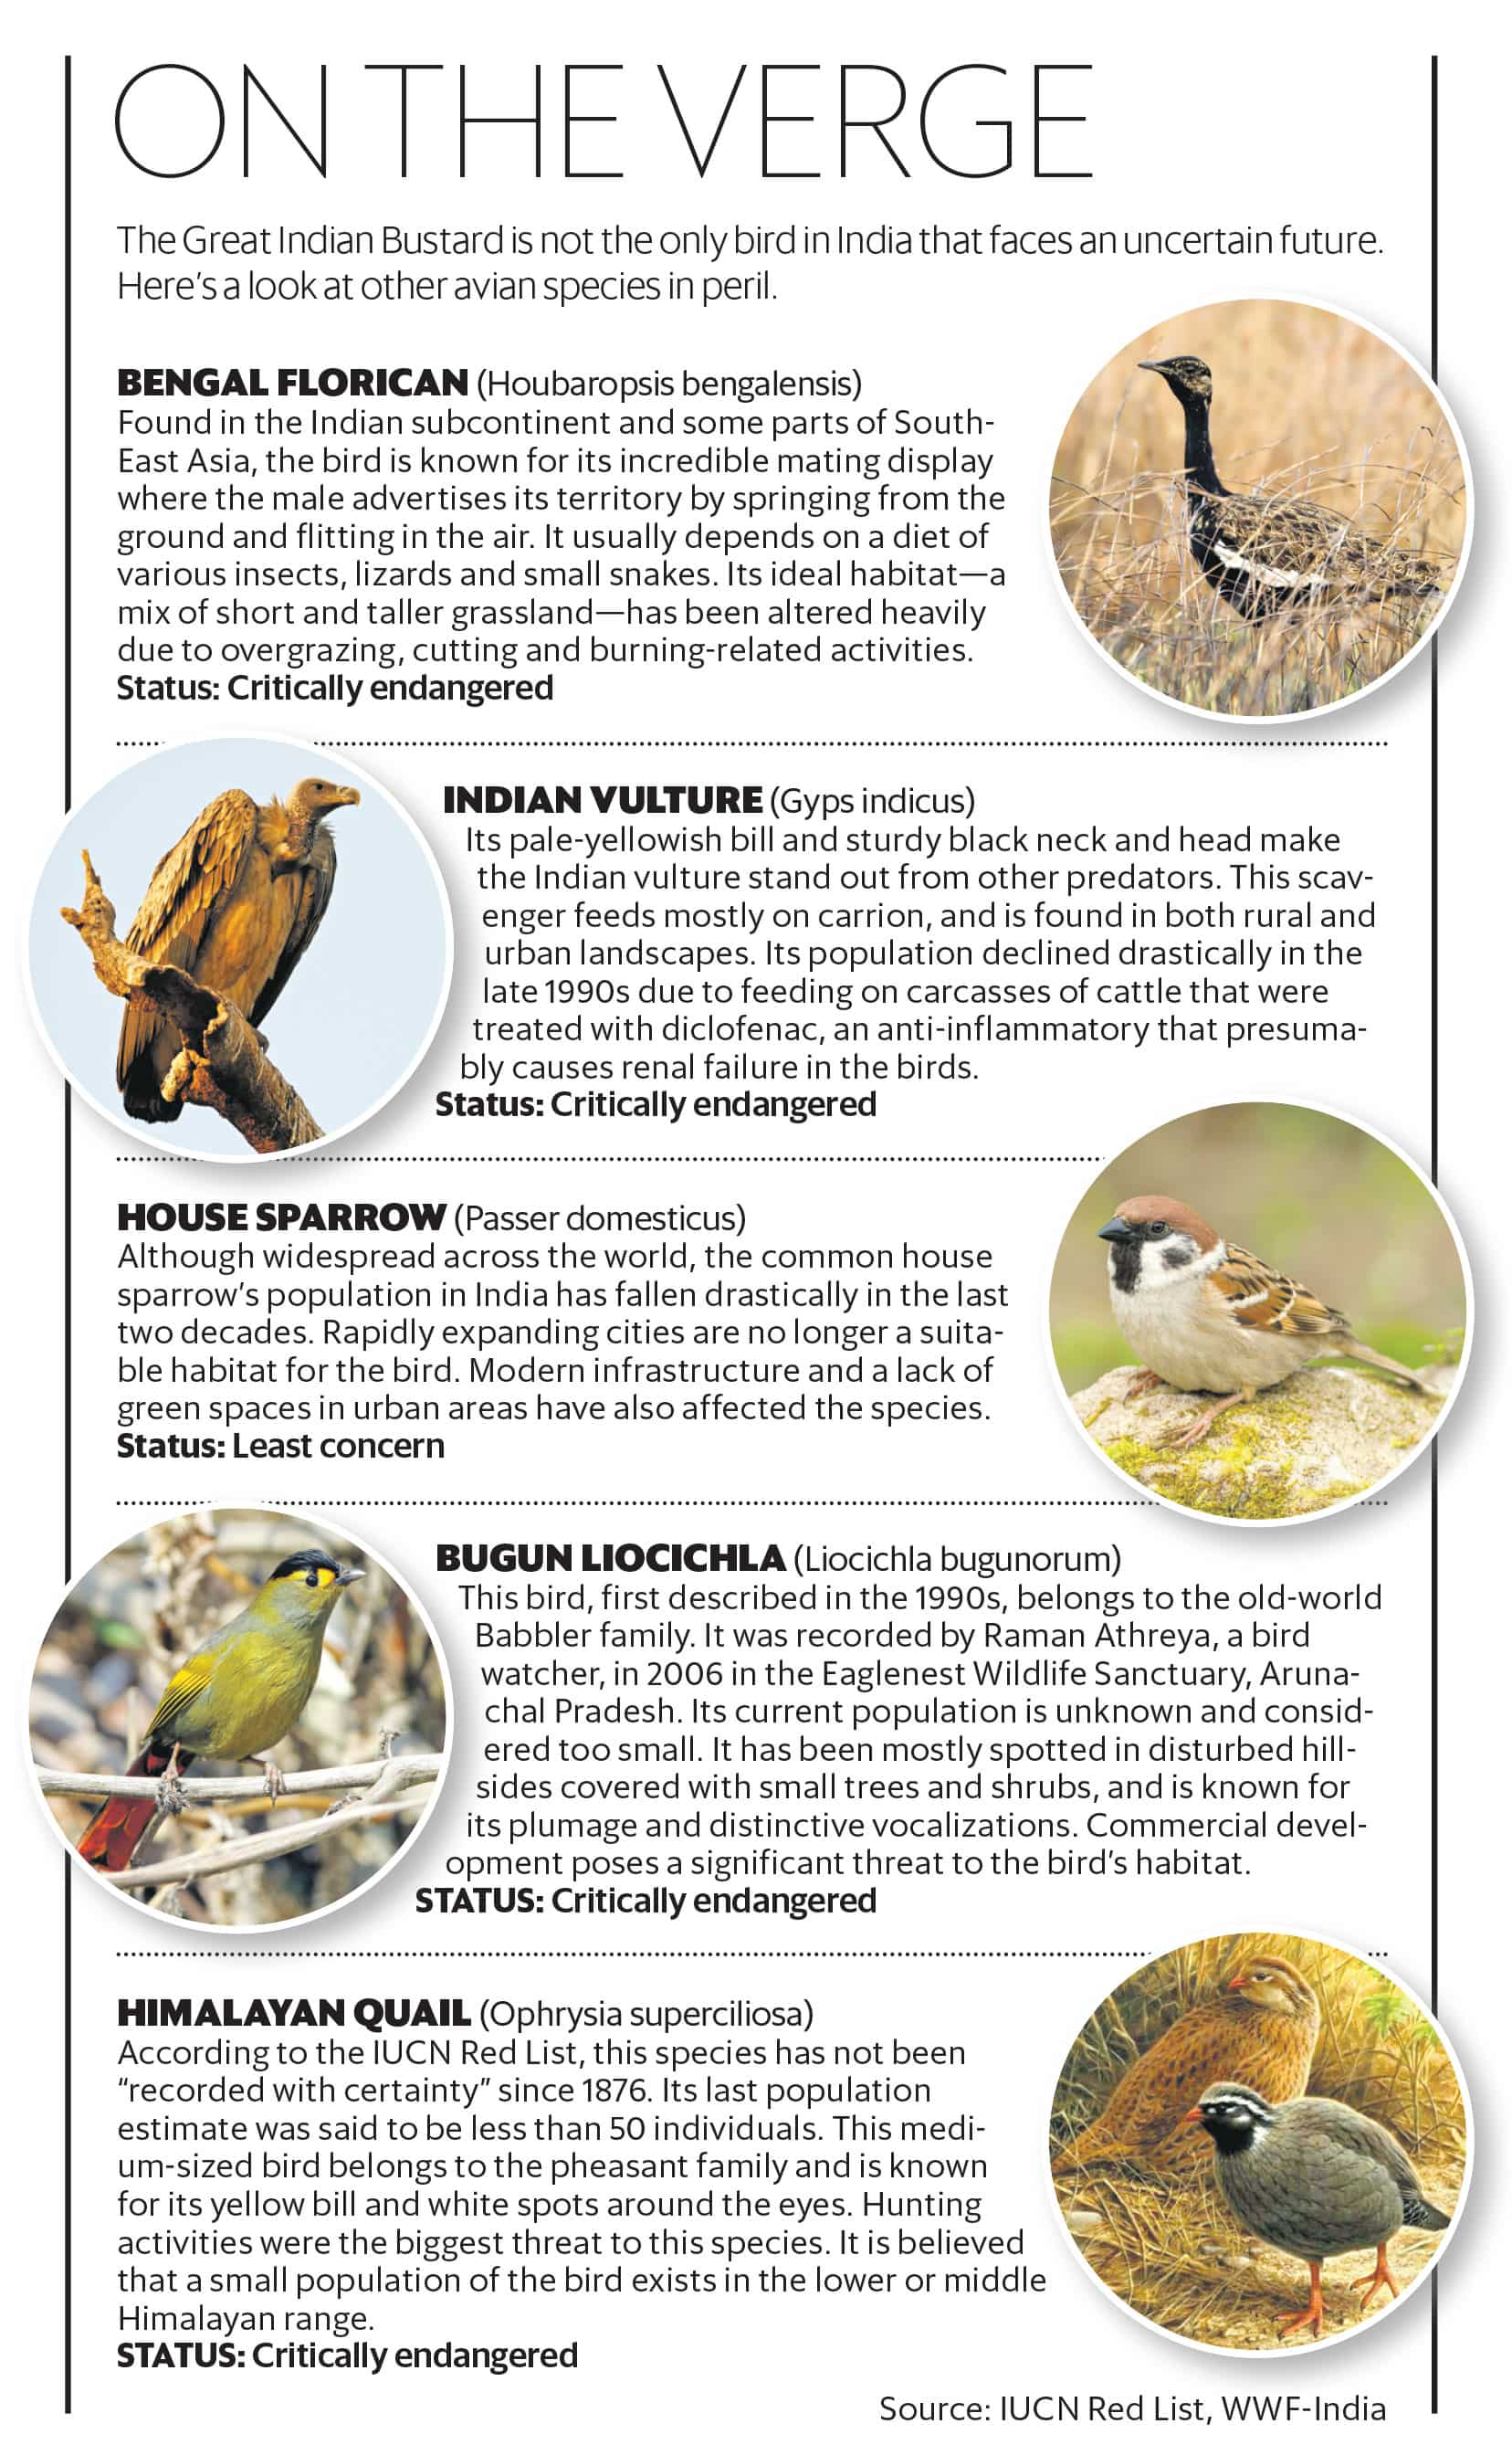 The Great Indian Bustard's last sigh